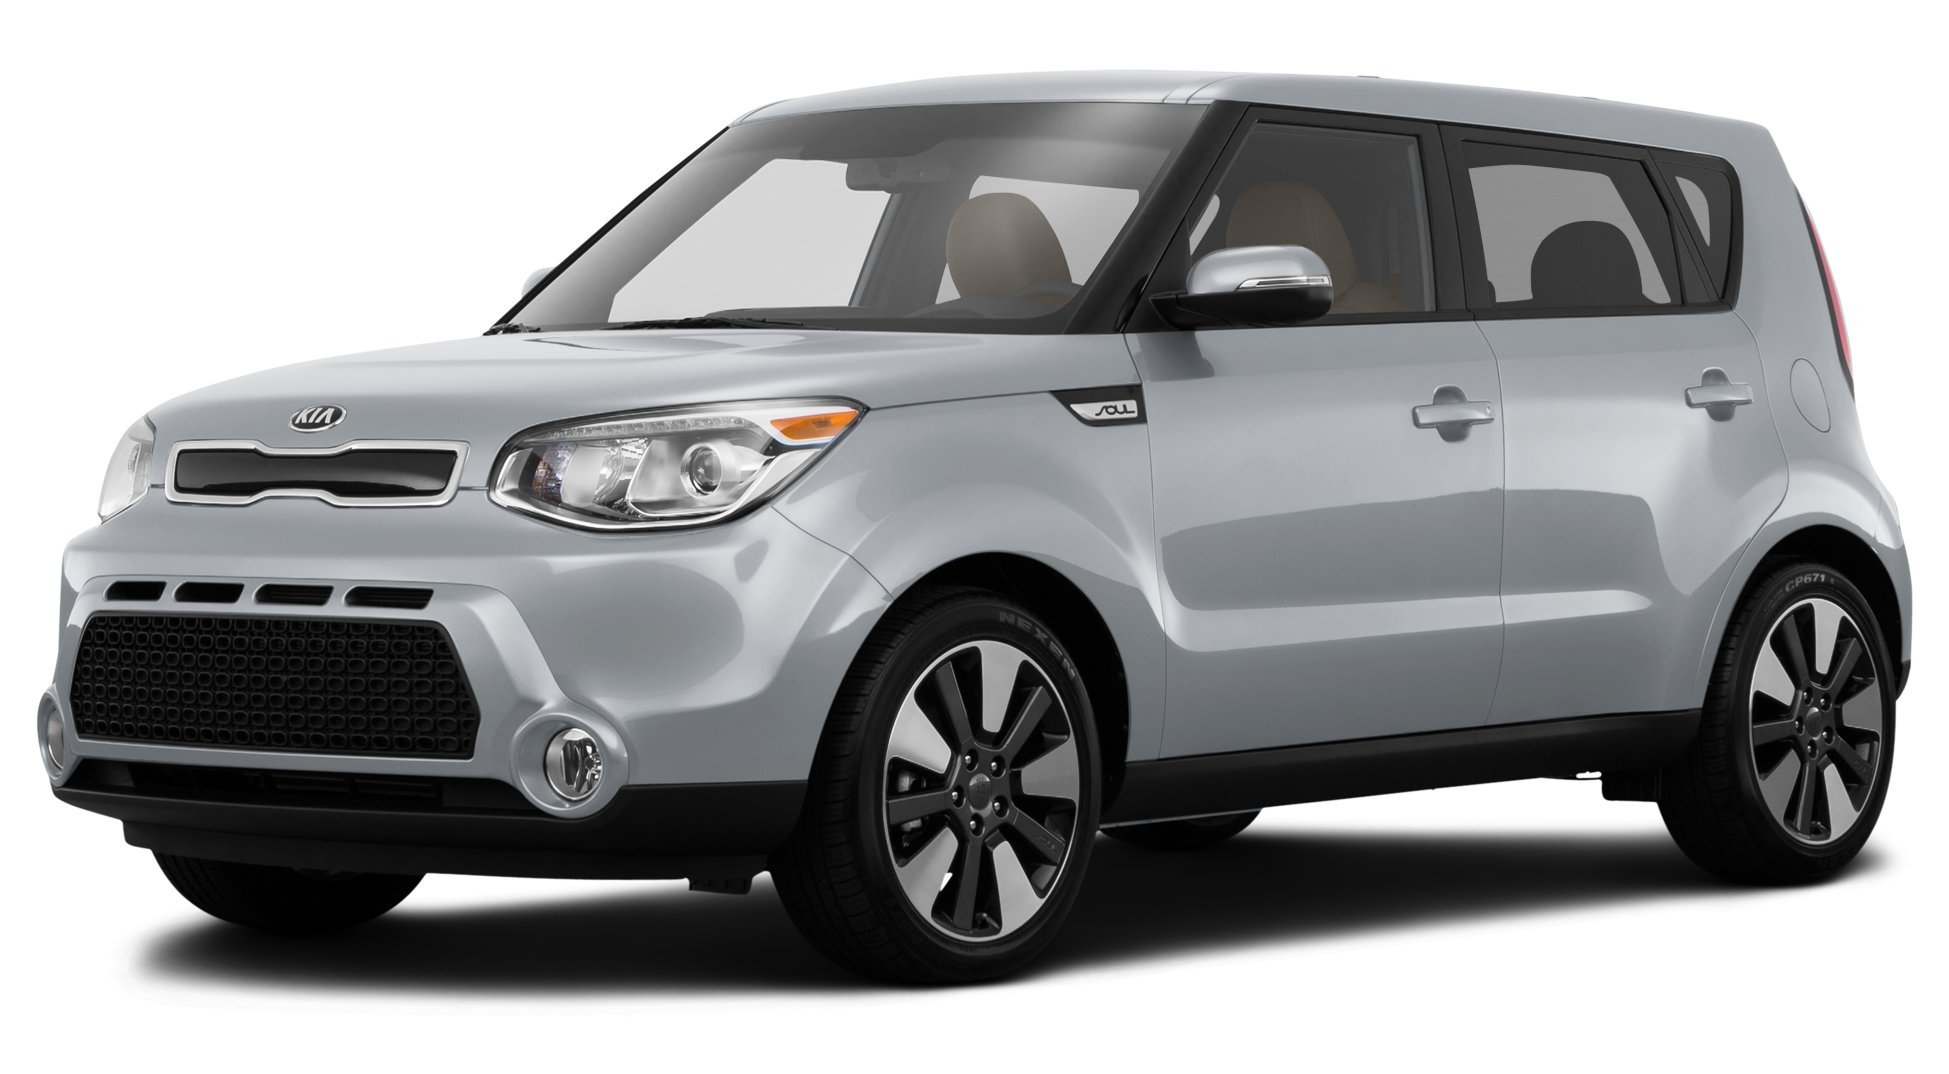 2016 kia soul reviews images and specs vehicles. Black Bedroom Furniture Sets. Home Design Ideas